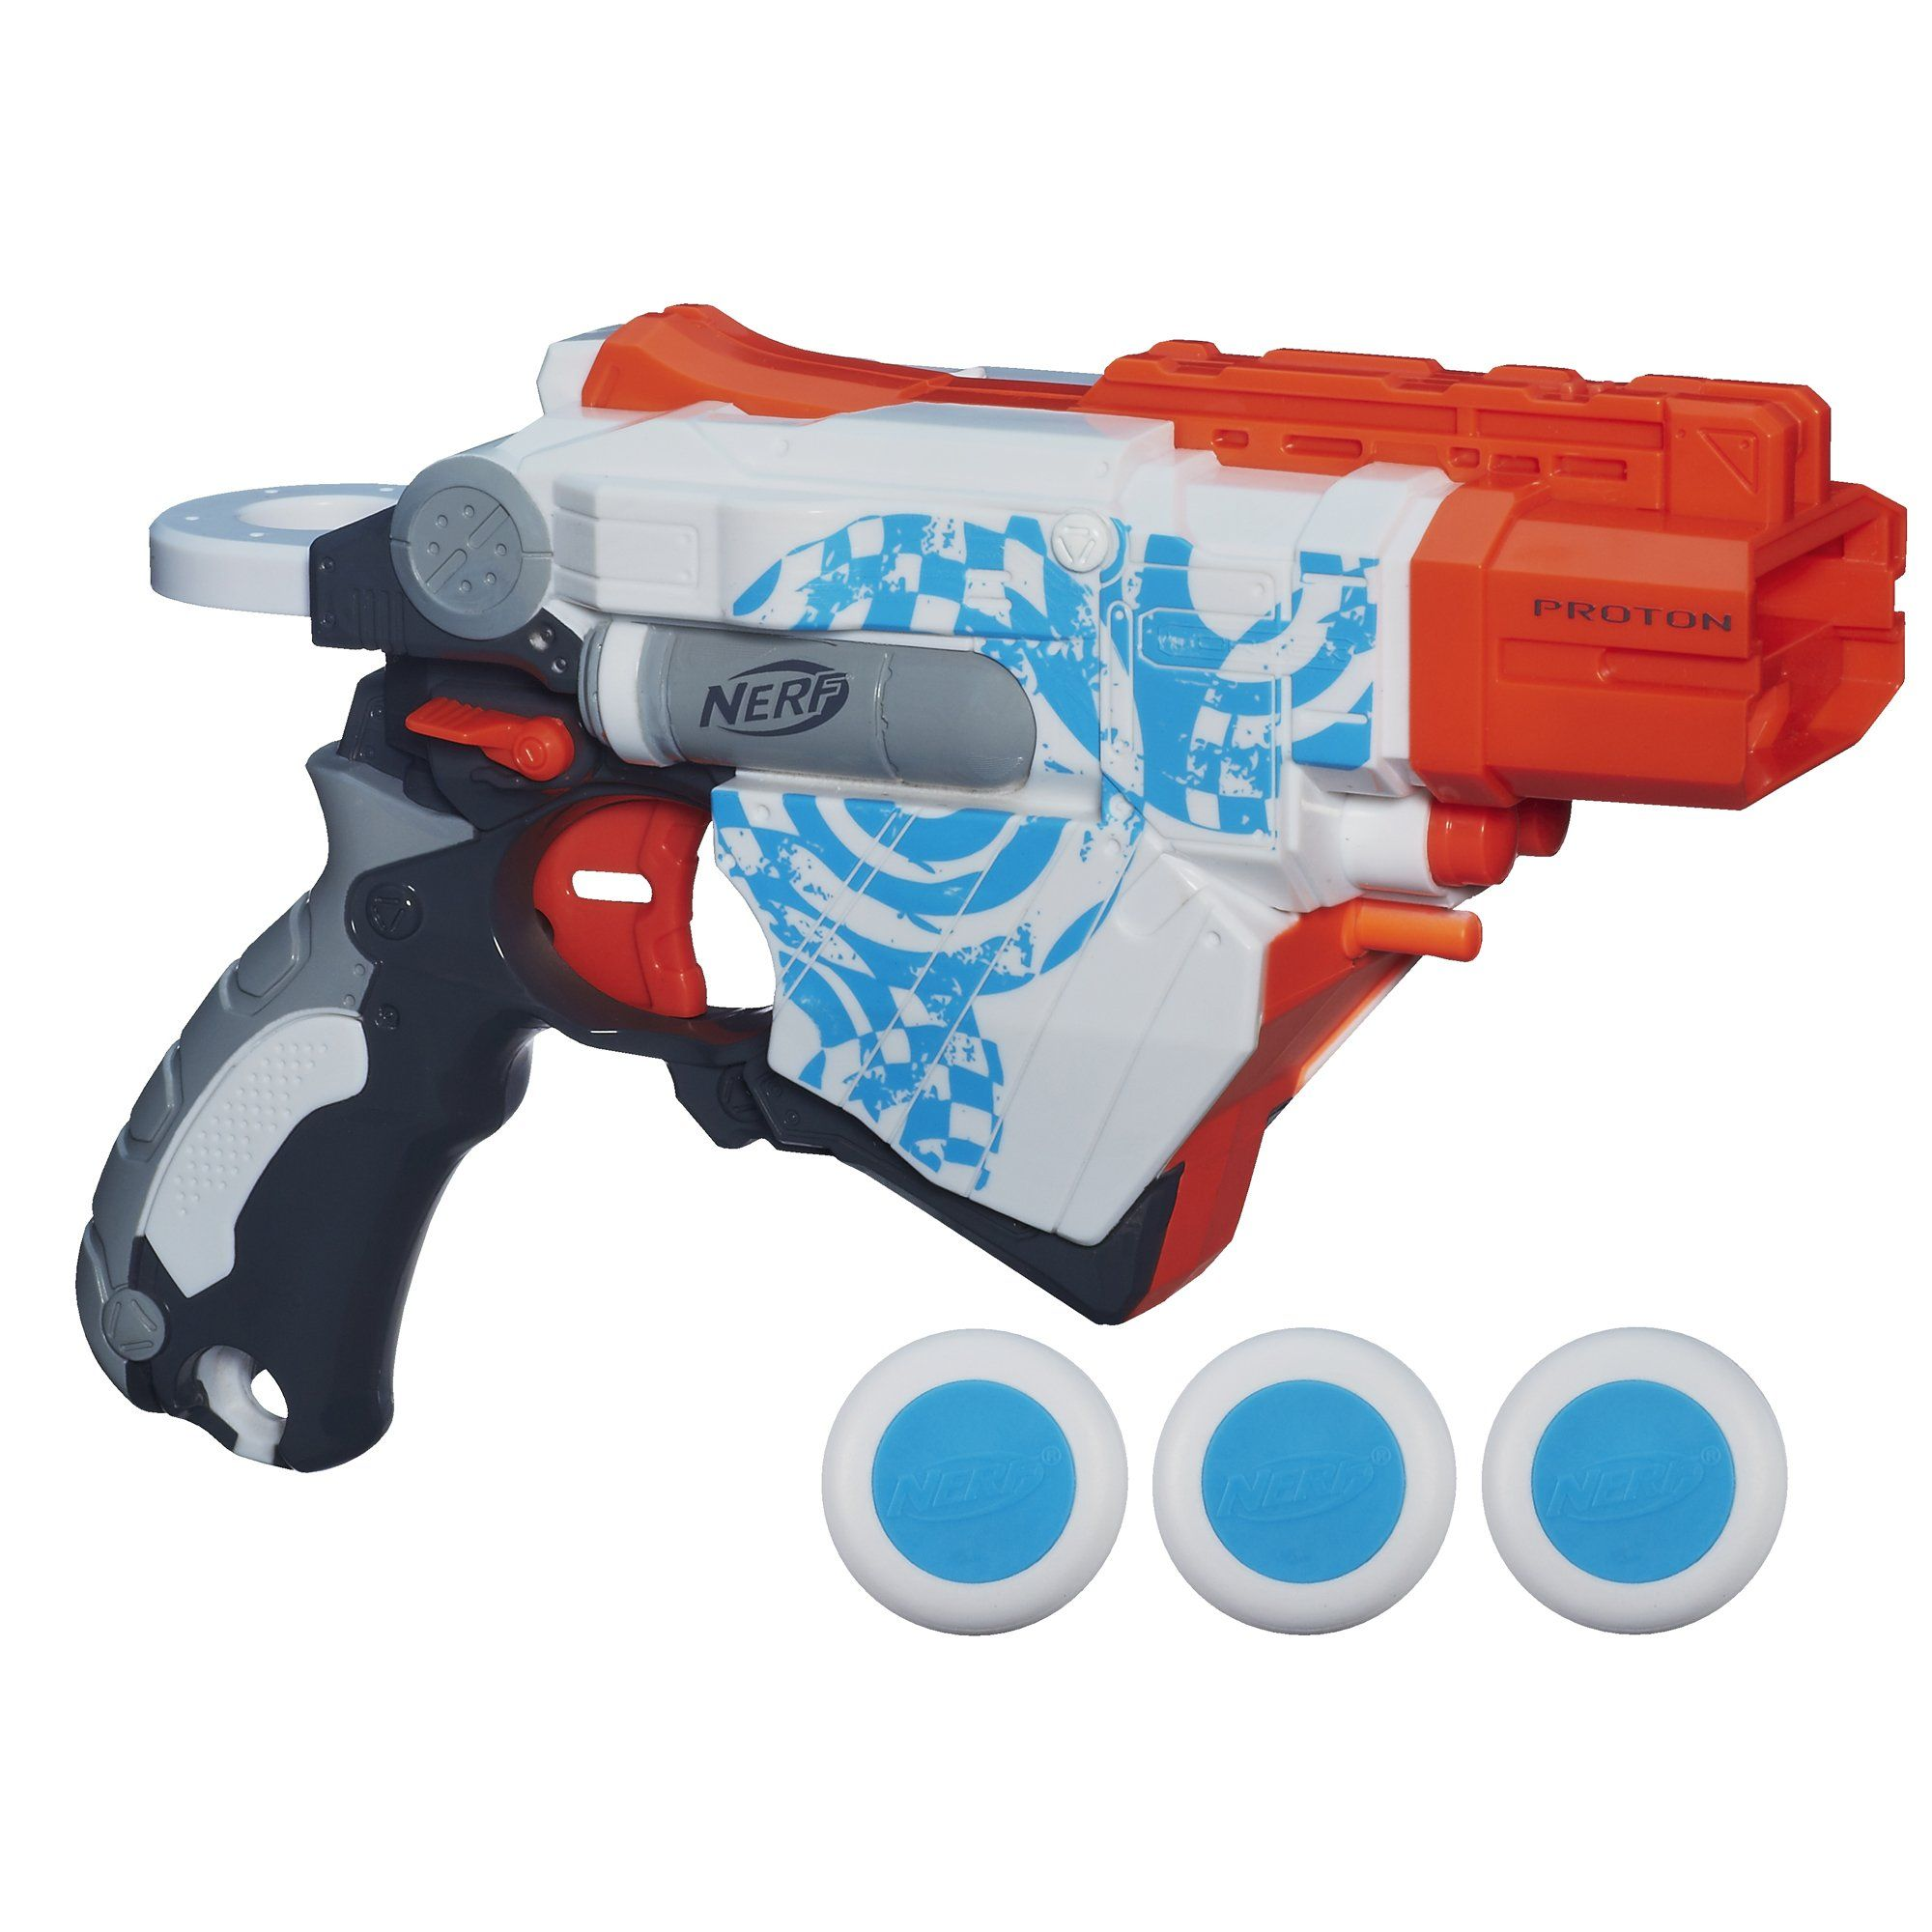 Black Friday 2014 Nerf Vortex Proton Blaster from Nerf Cyber Monday Black Friday specials on the season most wanted Christmas ts